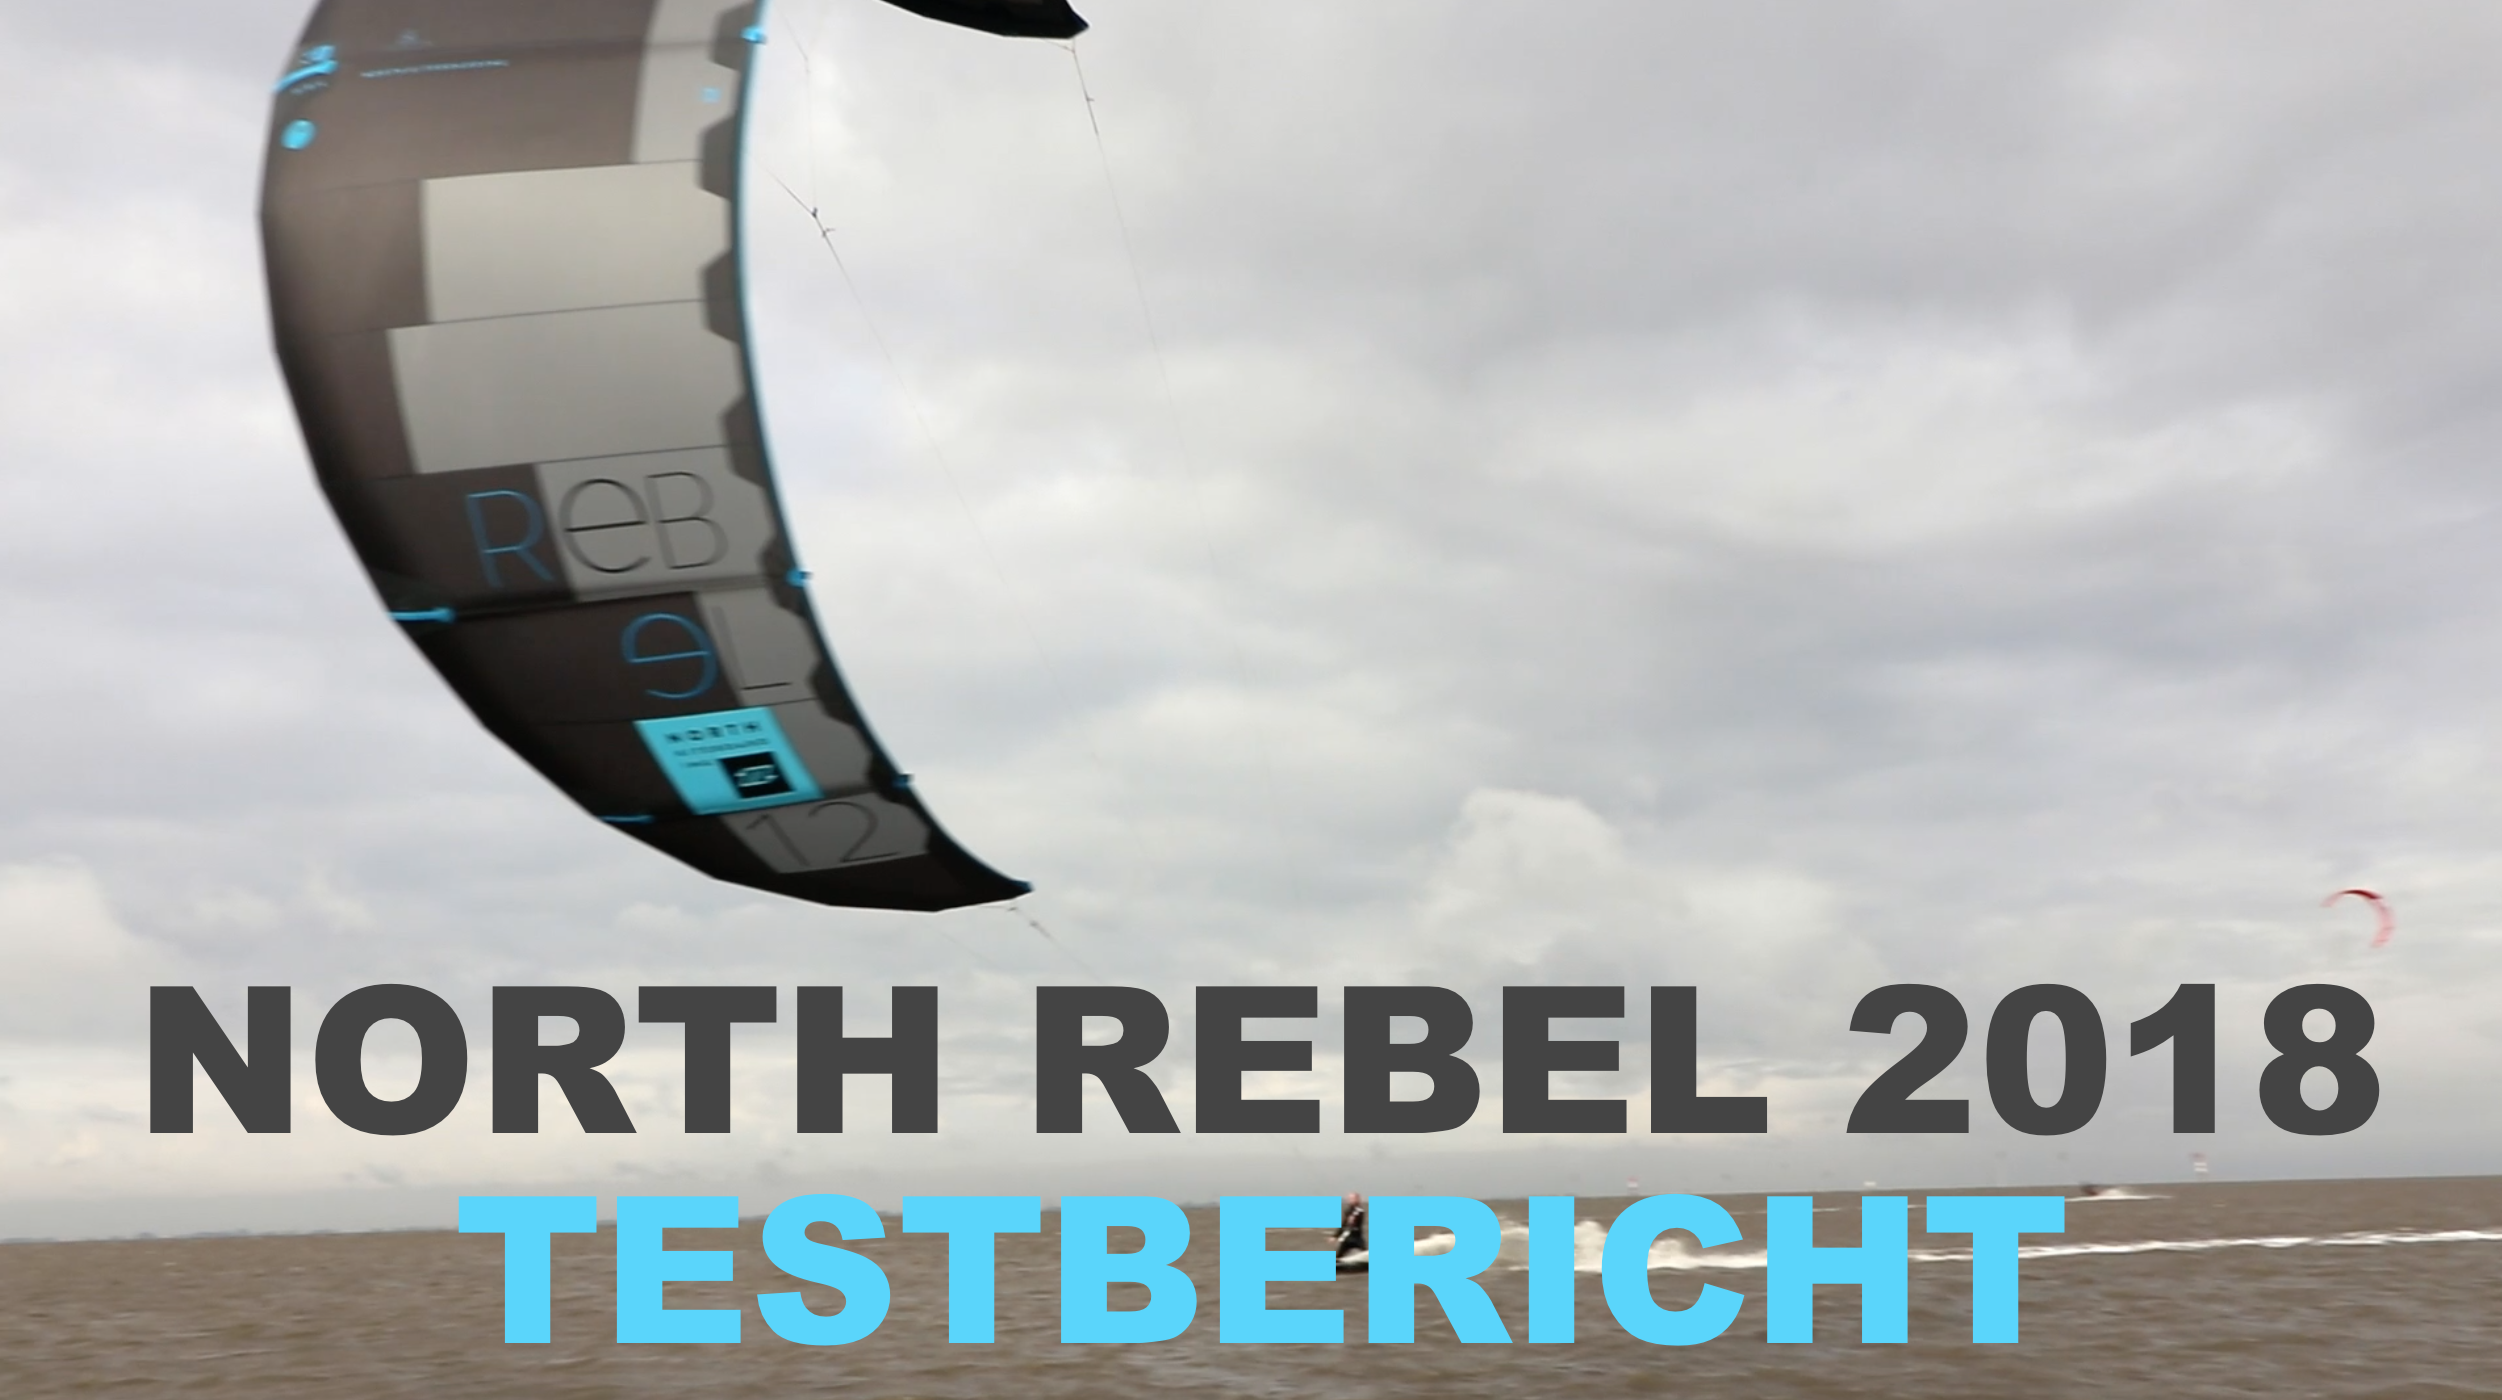 NORTH REBEL 2018 TESTBERICHT